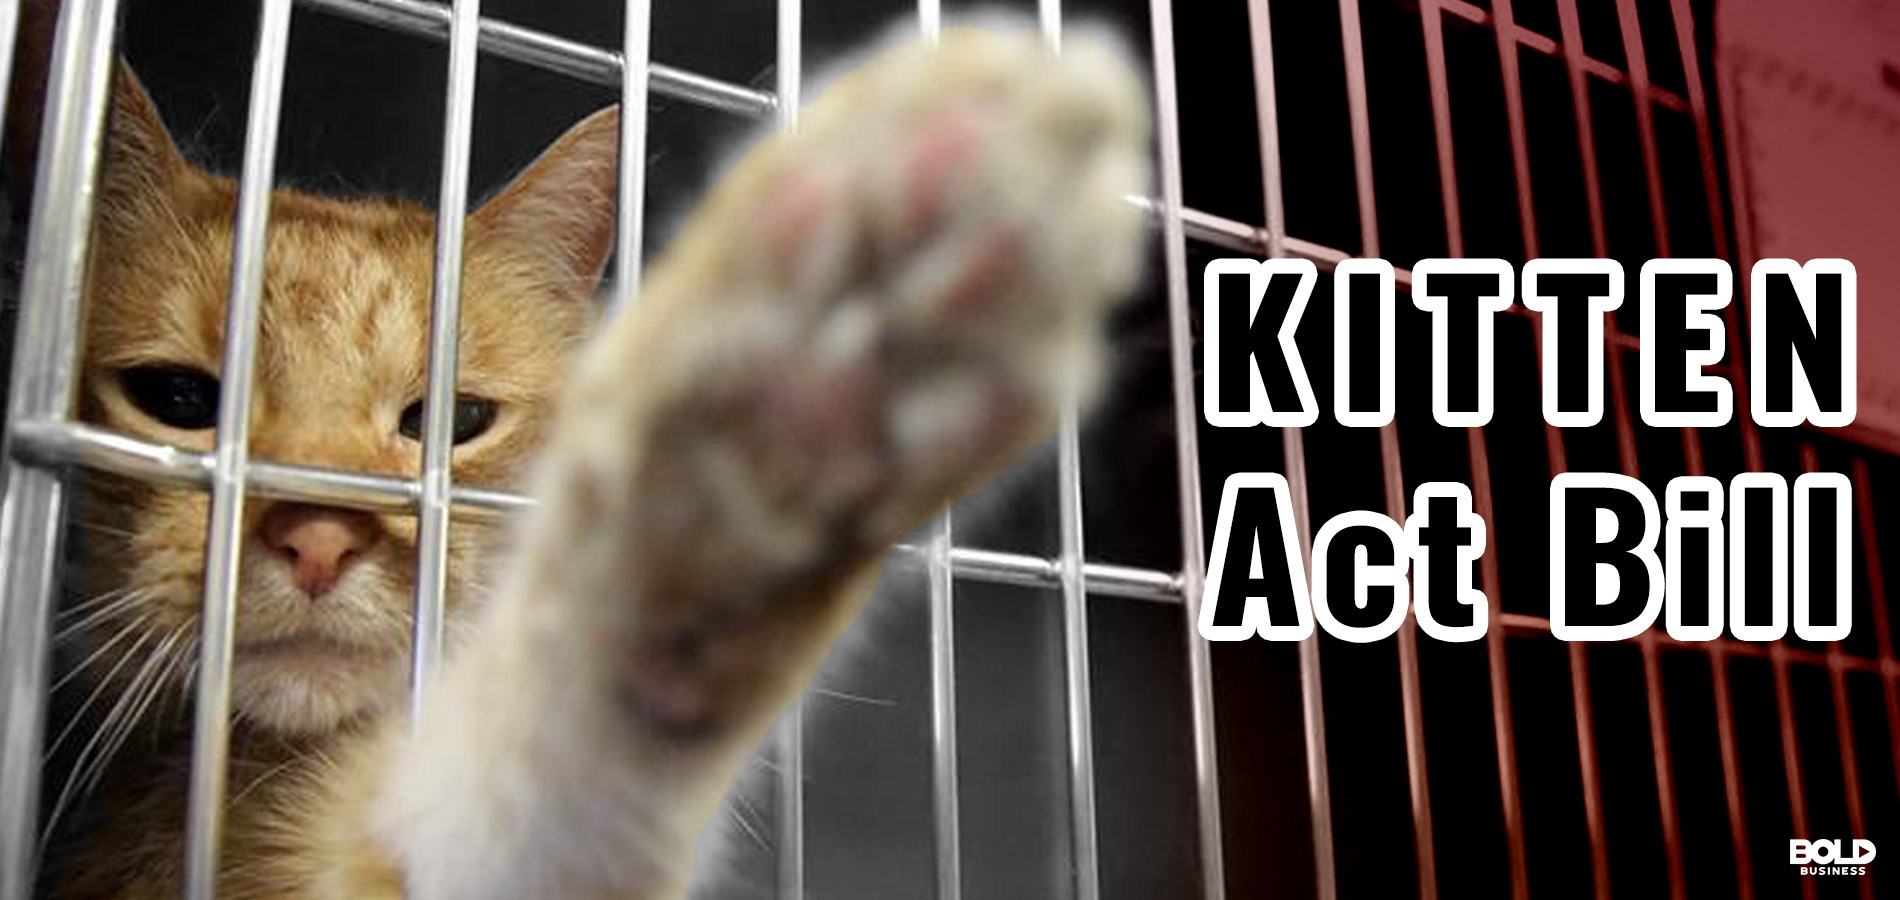 cat reaching out from a cage, kittne act